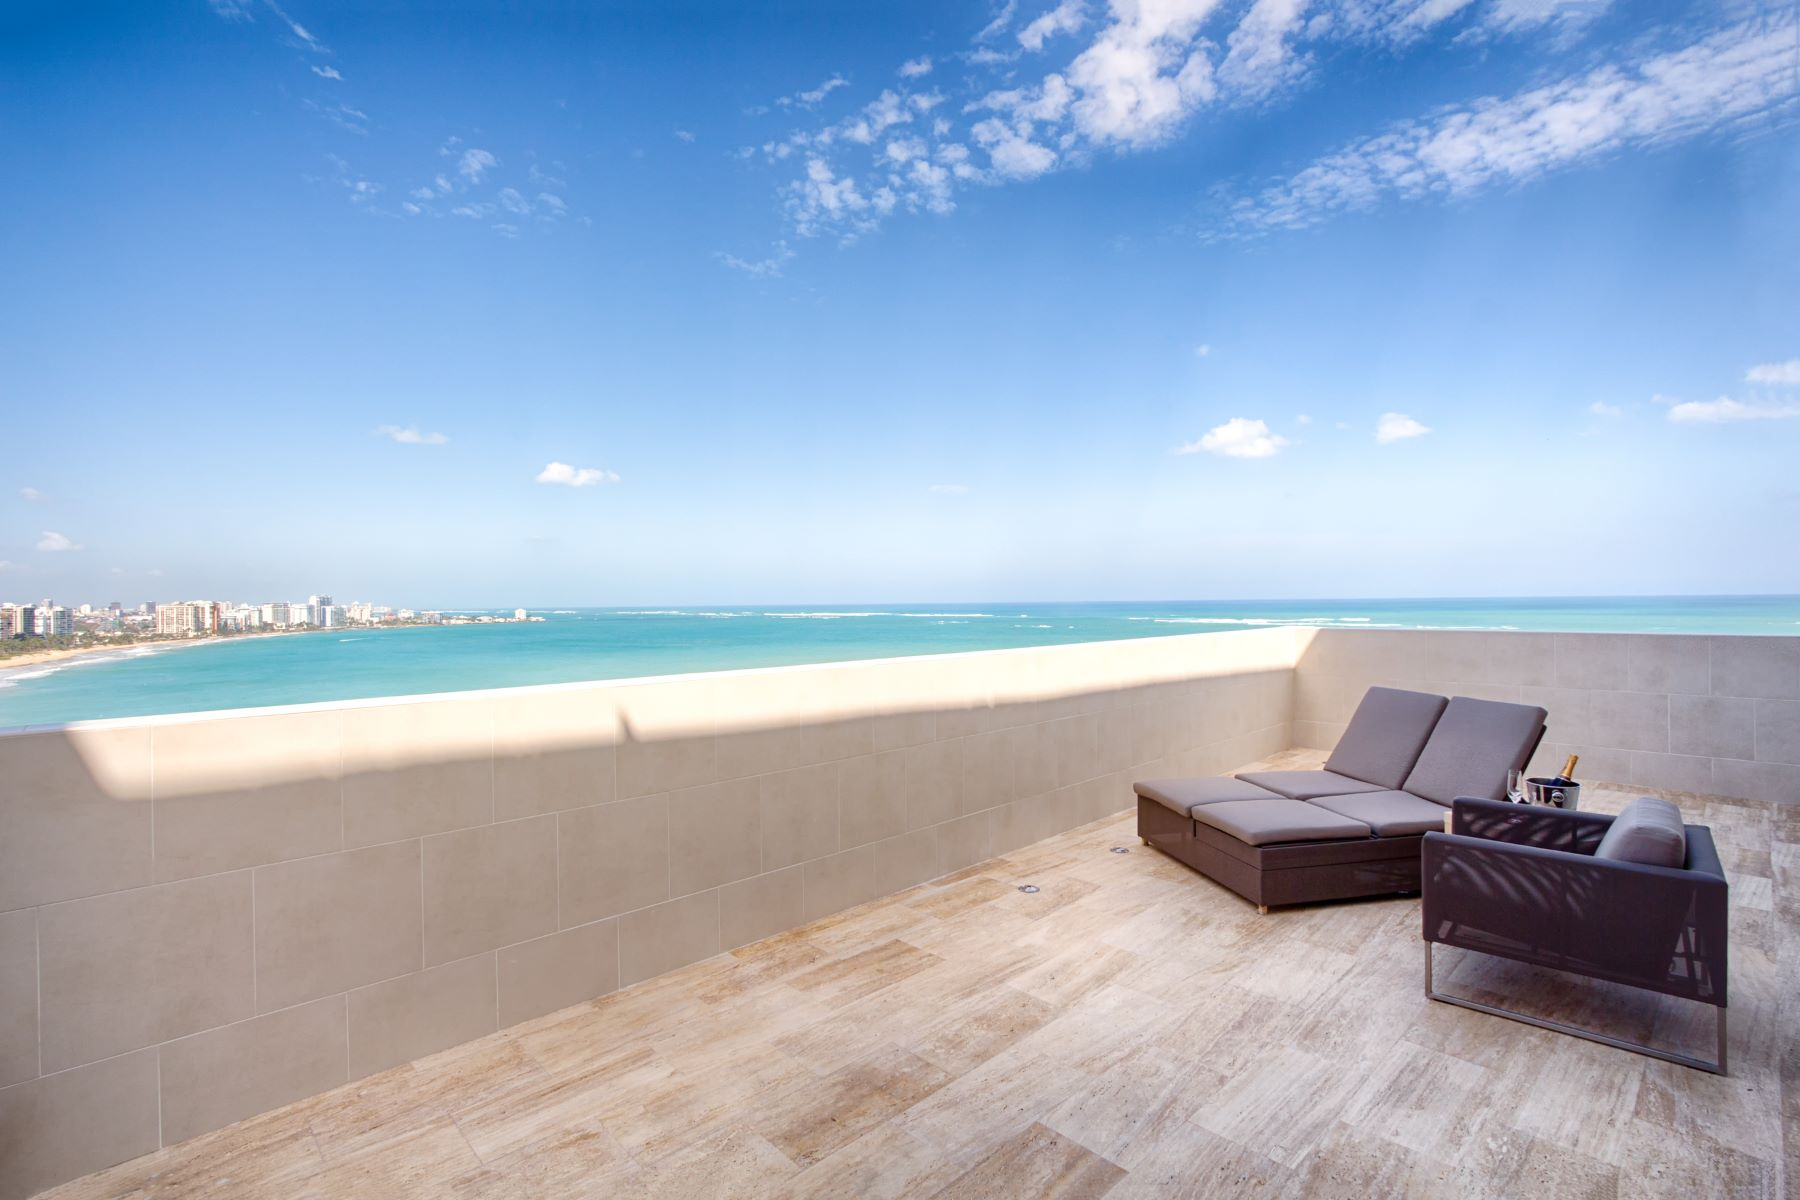 複式單位 為 出售 在 The Ultimate Beach Penthouse 6165 Isla Verde Ave. PH Carolina, 00979 波多黎各